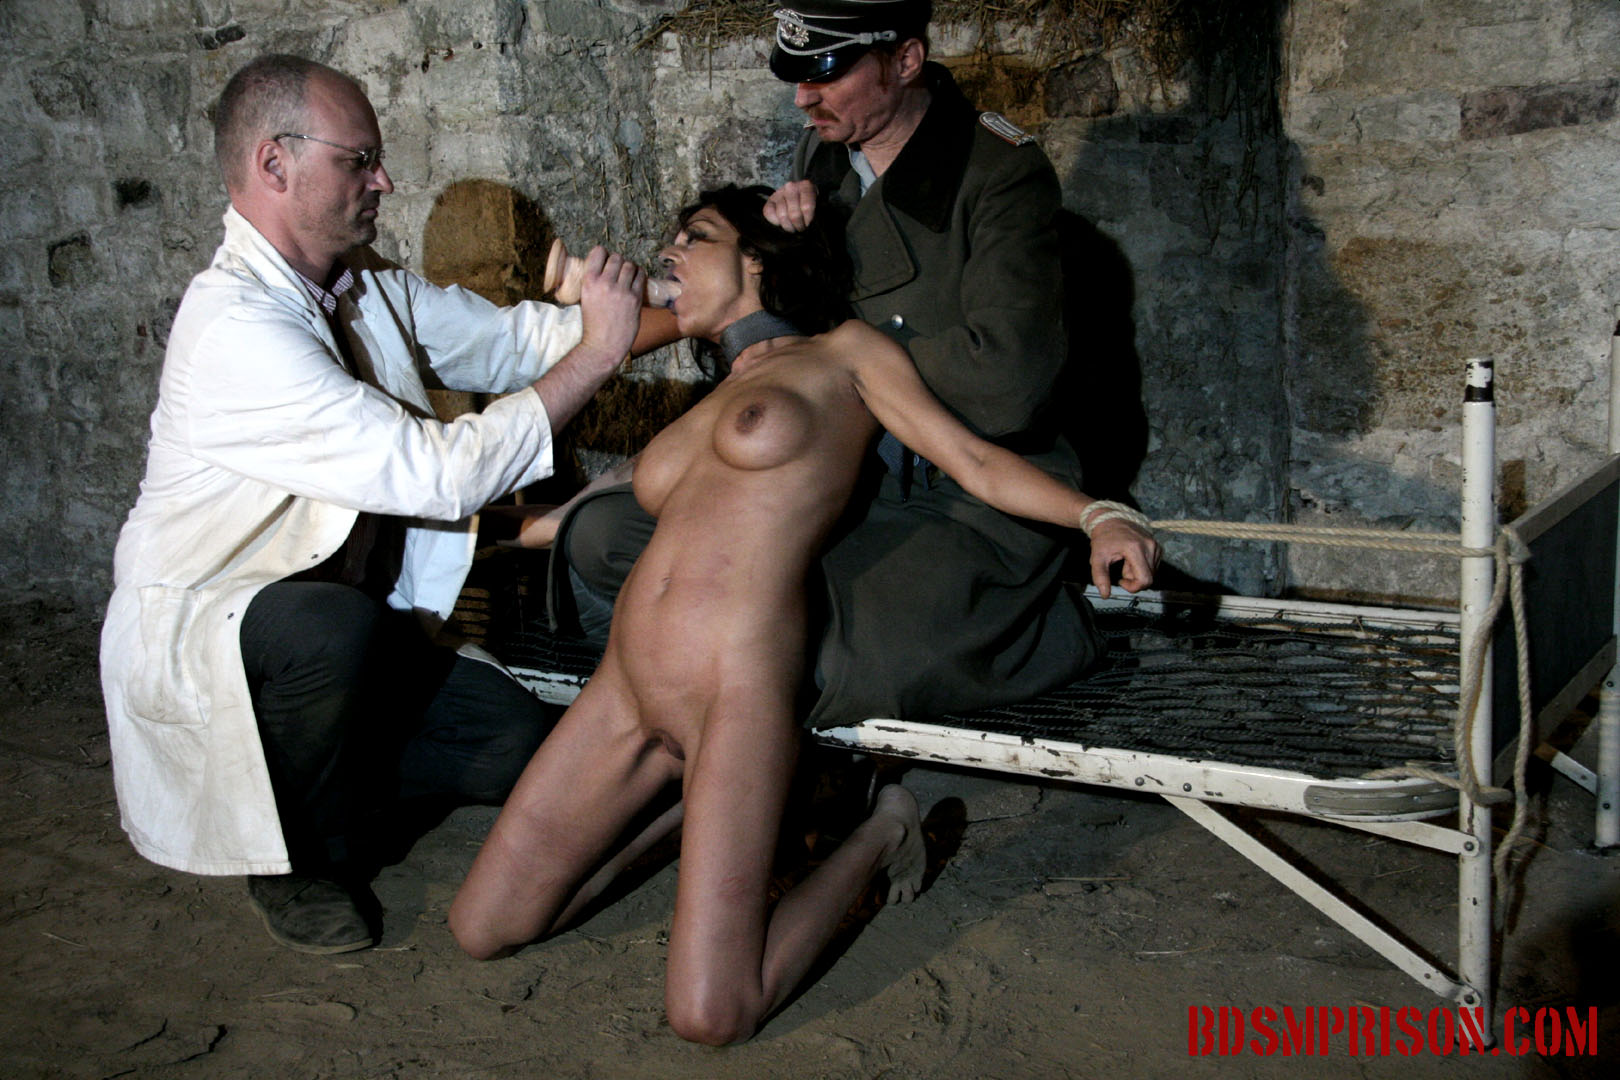 Natalia rope bondage dildo deepthroat bj. Natalia is punish daily by a prison doctor and guard. She's been sentenced to lifelong sex slave traininig. Today she is bound to a bed frame. She must endure two BDSM Prison Masters, domination, humiliation, fingering, spanking, smacking, whipping with a leather belt, rope bondage, breast, kitty and nipple torment. Next, one of the guards wants to see her give a sloppy deepthroat blowjob, penetrating her throat rough and fast with a dildo, making her gag up spit all over her tits.